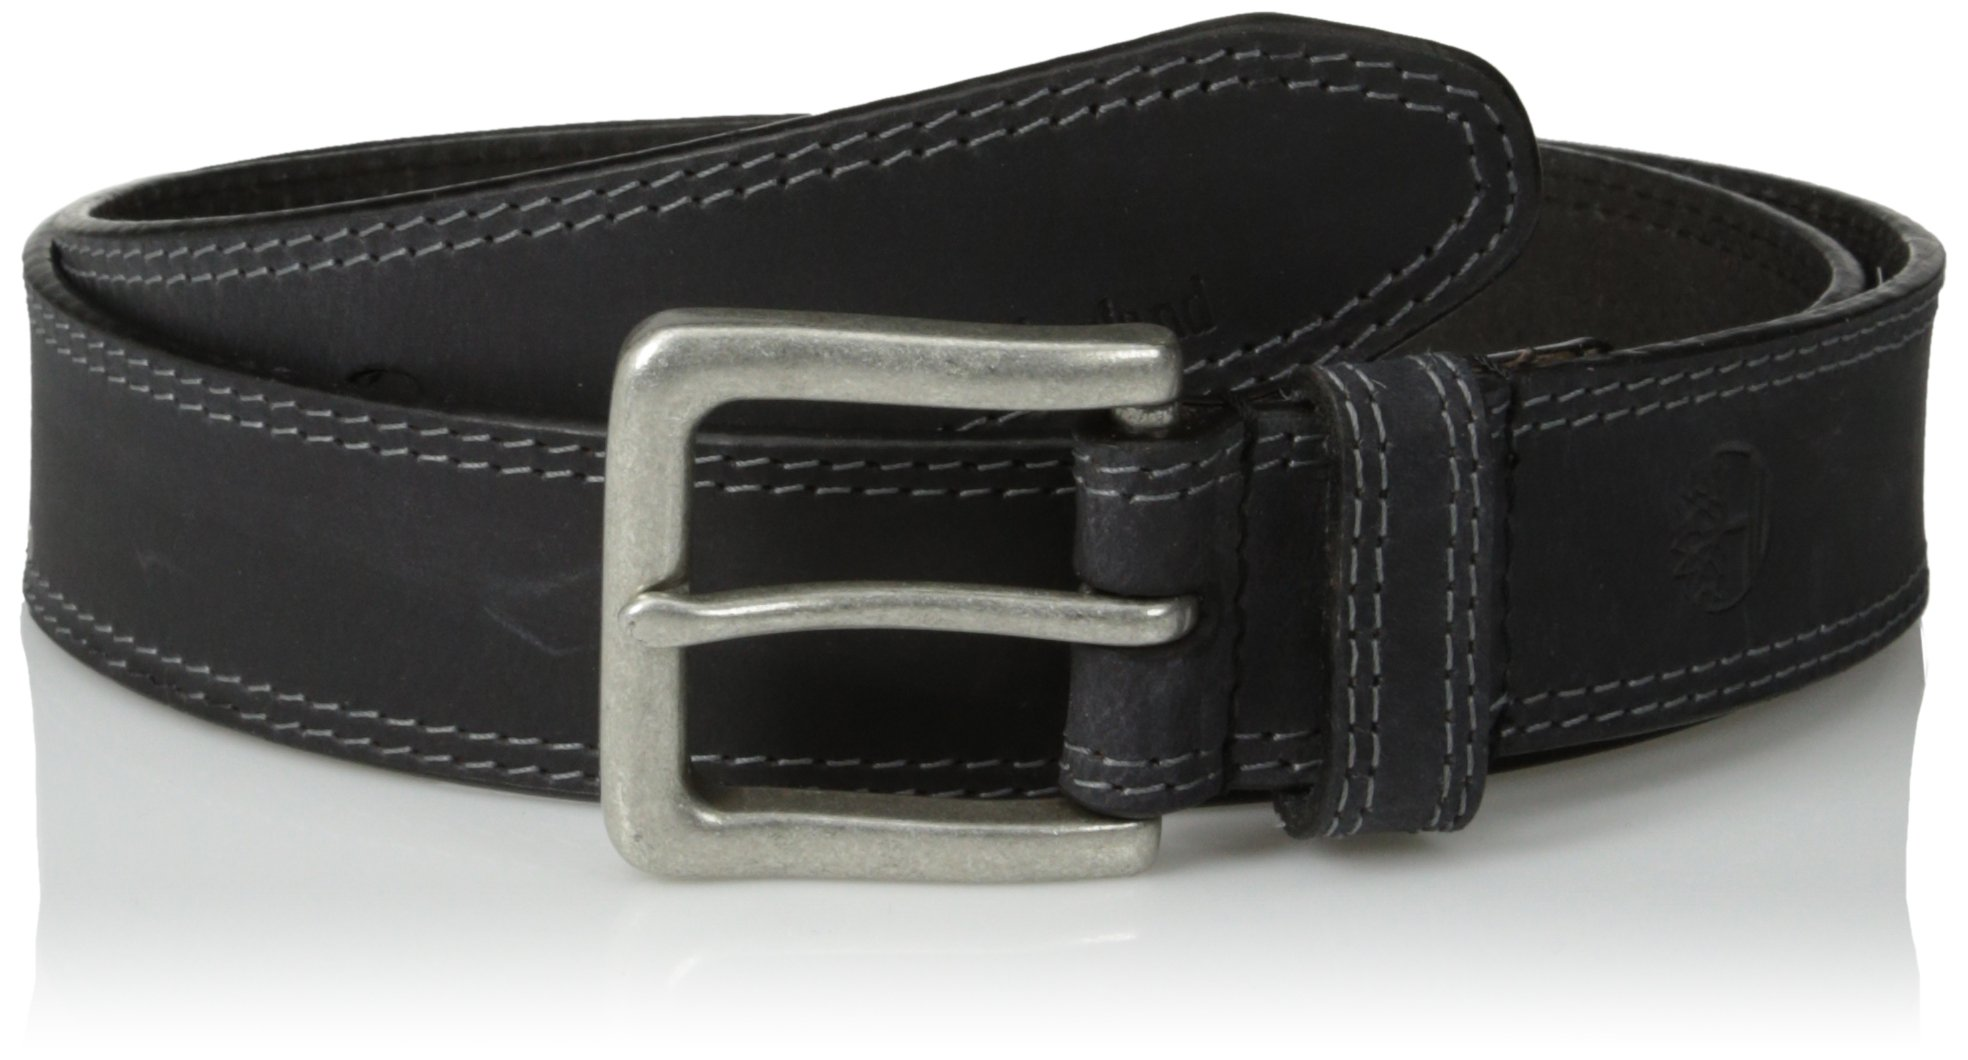 Timberland Men's 35Mm Boot Leather Belt, Black, 32